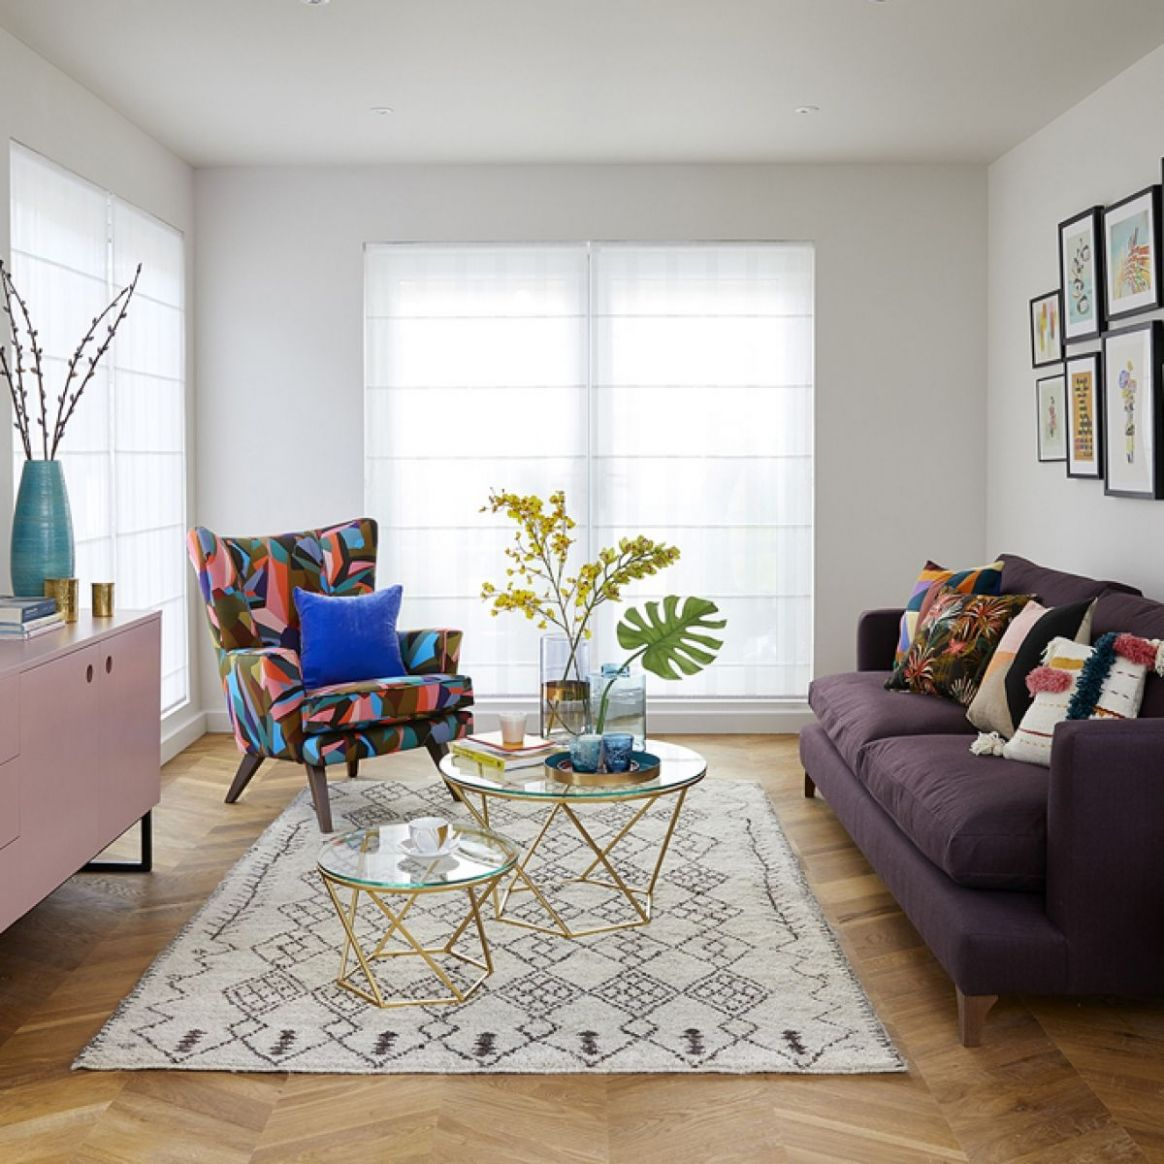 How to design an open plan living room from the fantastic Sophie ..